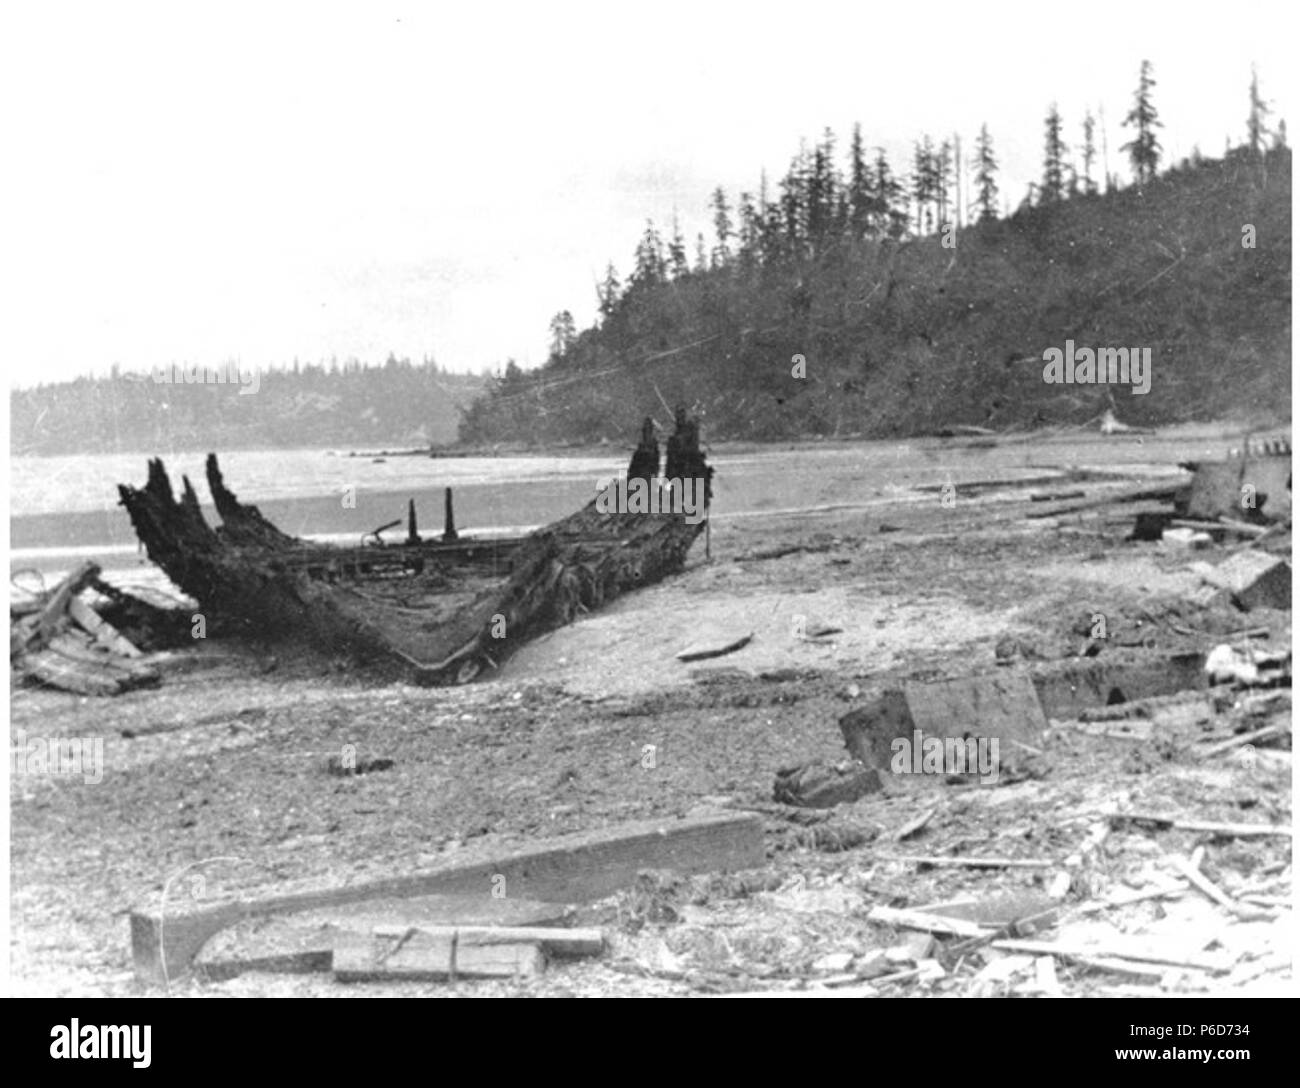 English: Remains of a shipwreck on a beach near Seattle